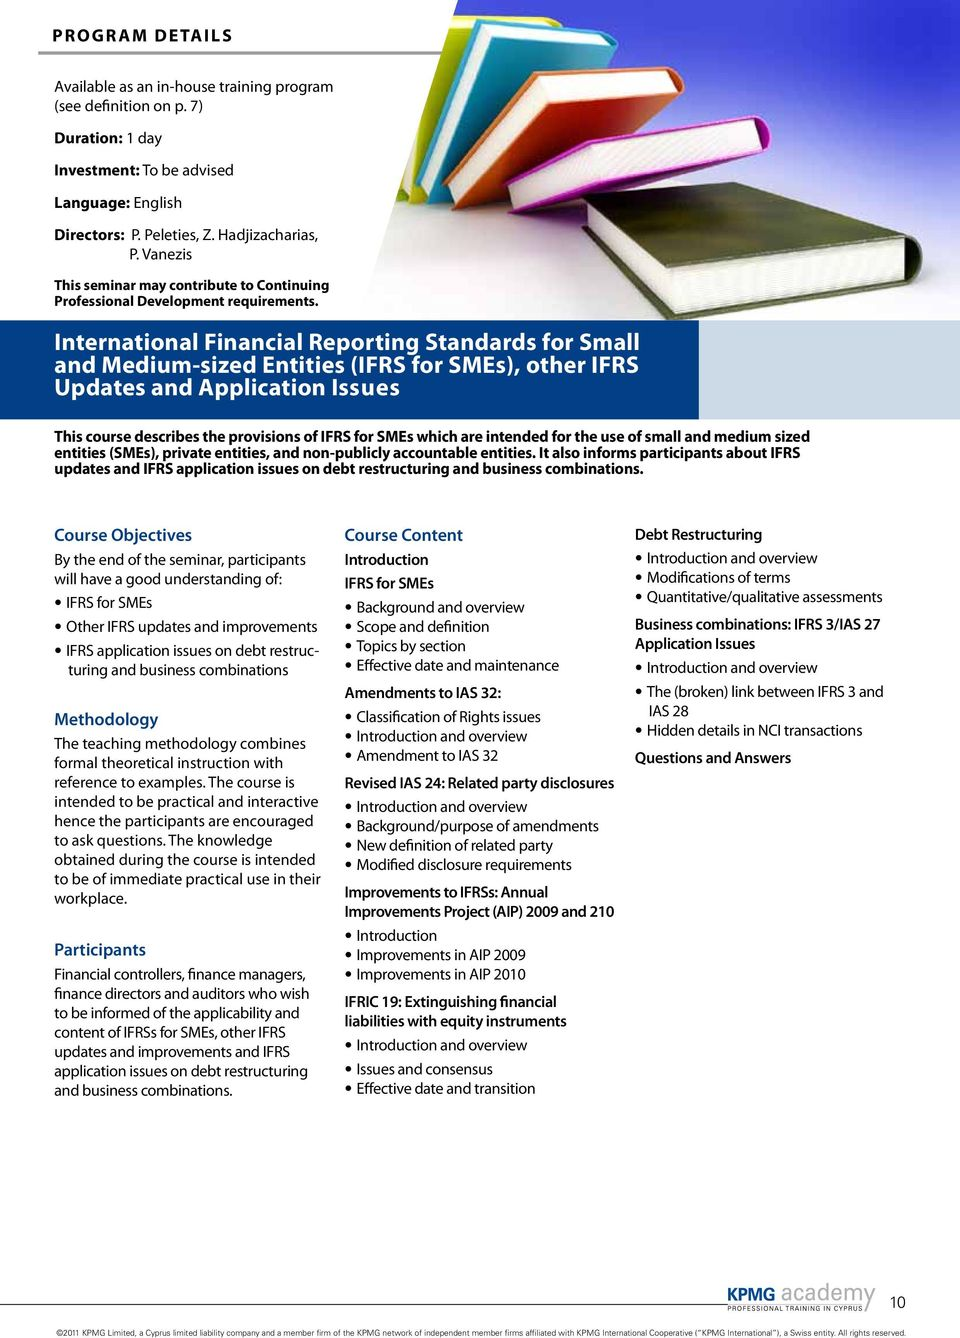 International Financial Reporting Standards for Small and Medium-sized Entities (IFRS for SMEs), other IFRS Updates and Application Issues This course describes the provisions of IFRS for SMEs which